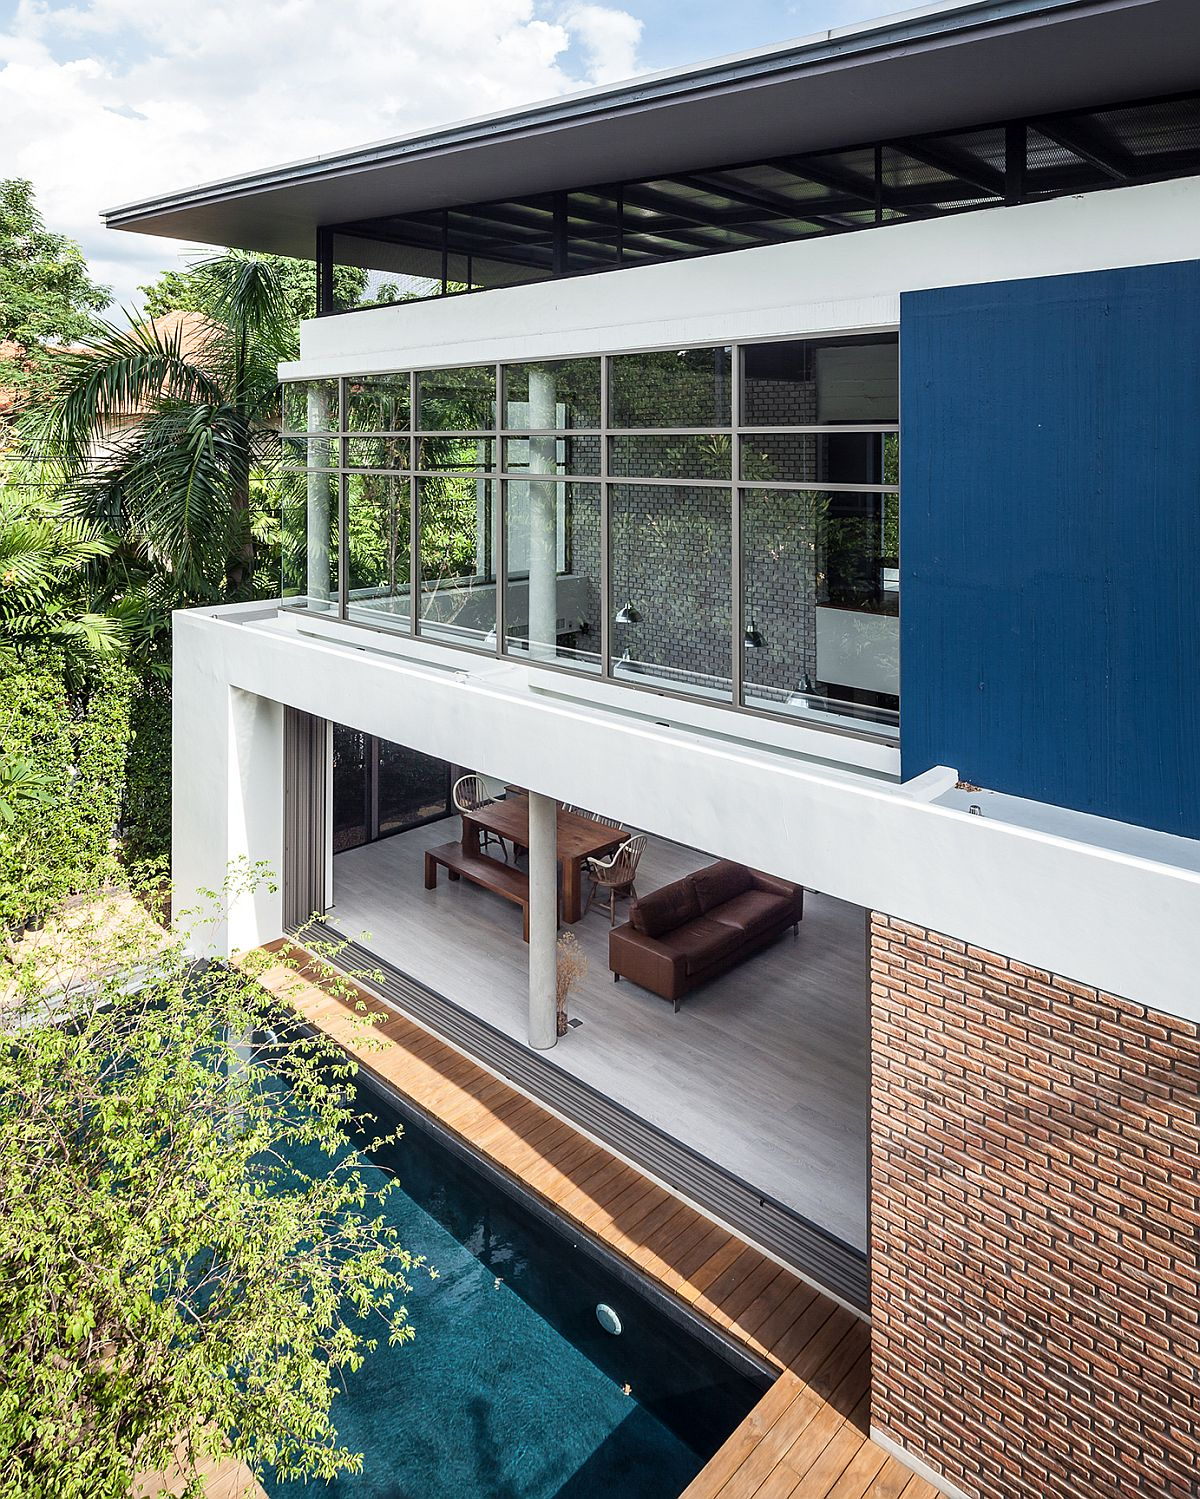 Large sliding glass doors and windows open up the Thai home towards the patio and pool area